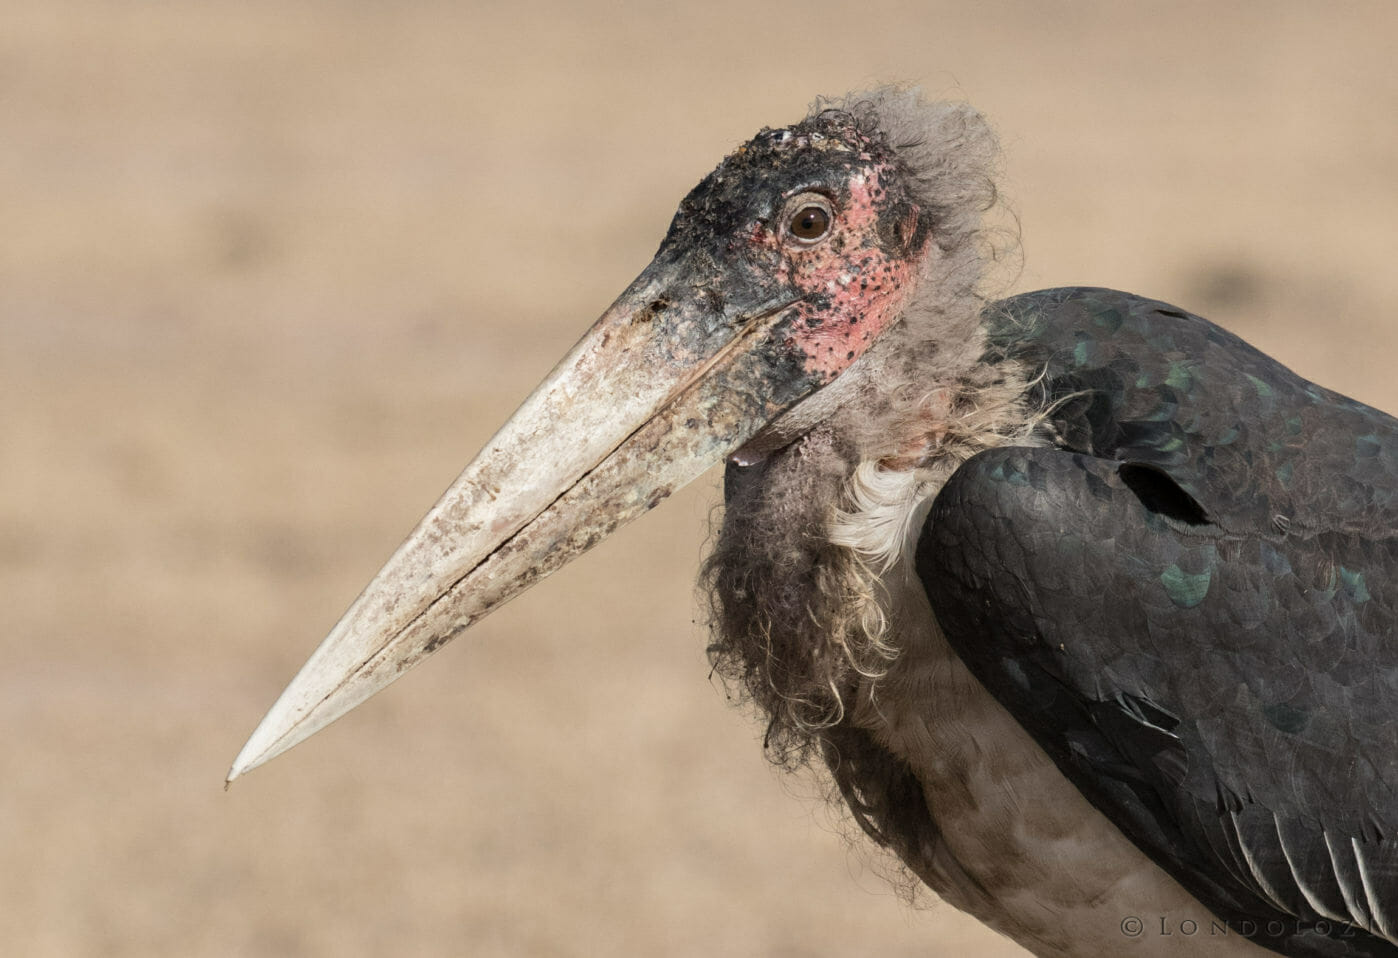 A close up image of the head and beak of a Marabou stork at Londolozi